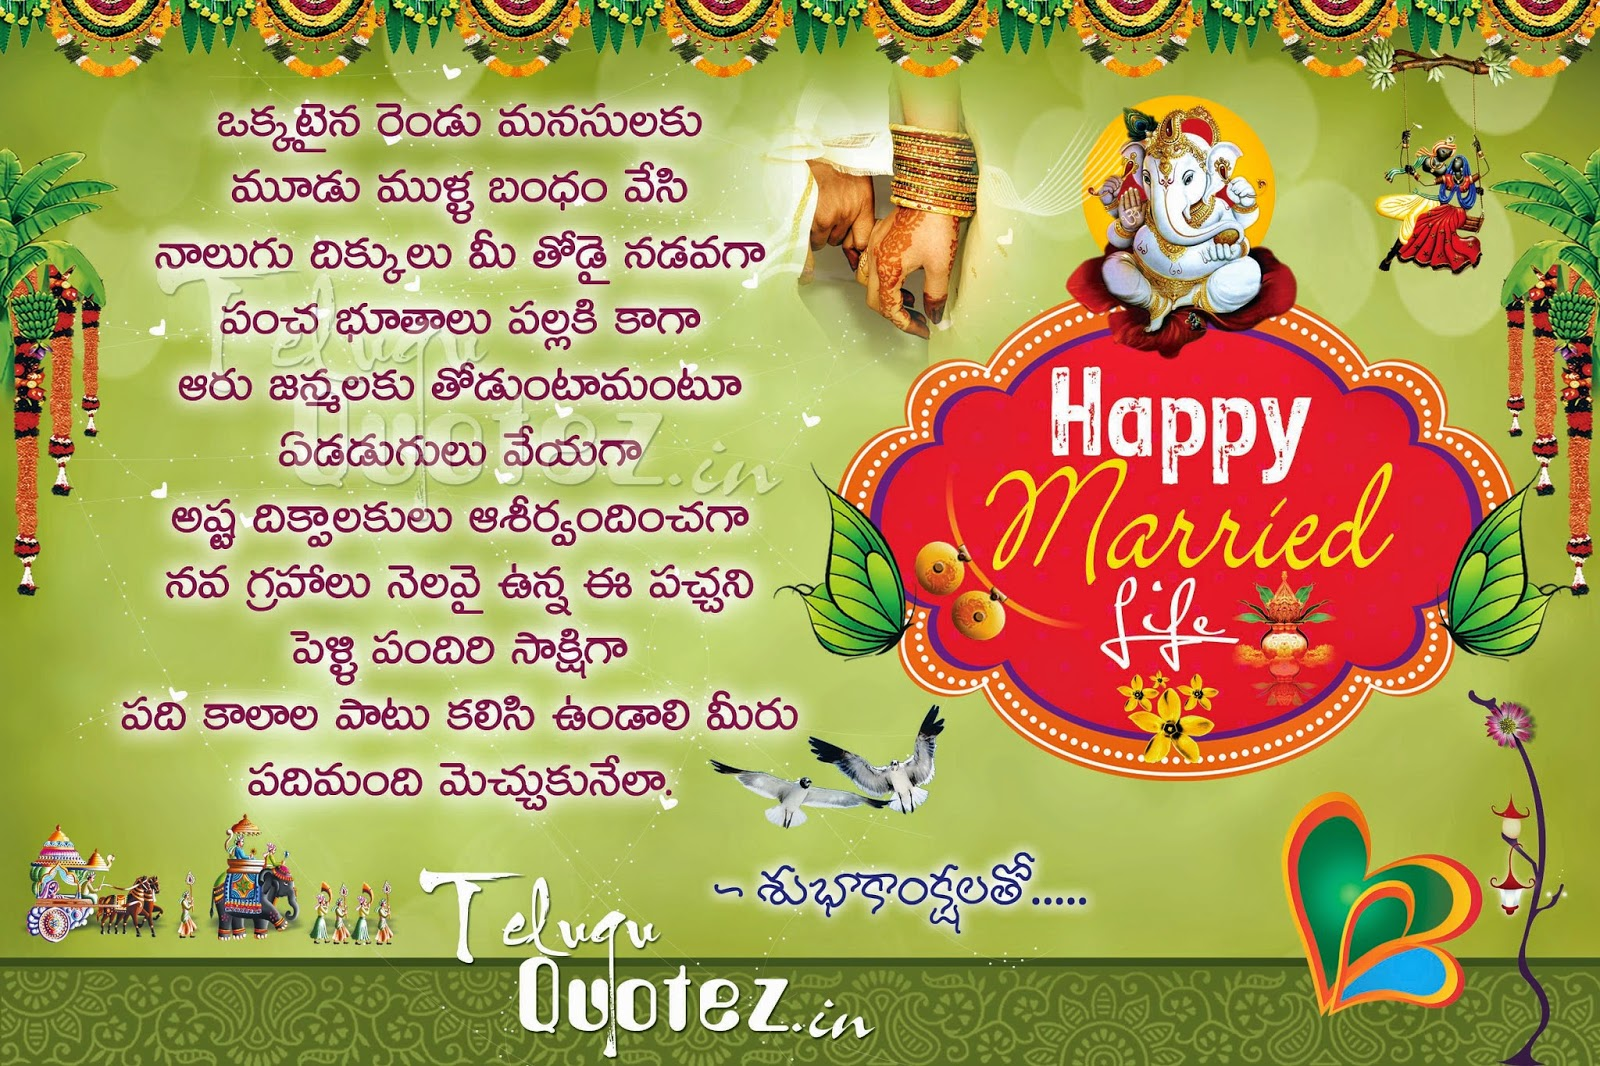 Indian Wedding Telugu Wishes For Couples Teluguquotezin Telugu